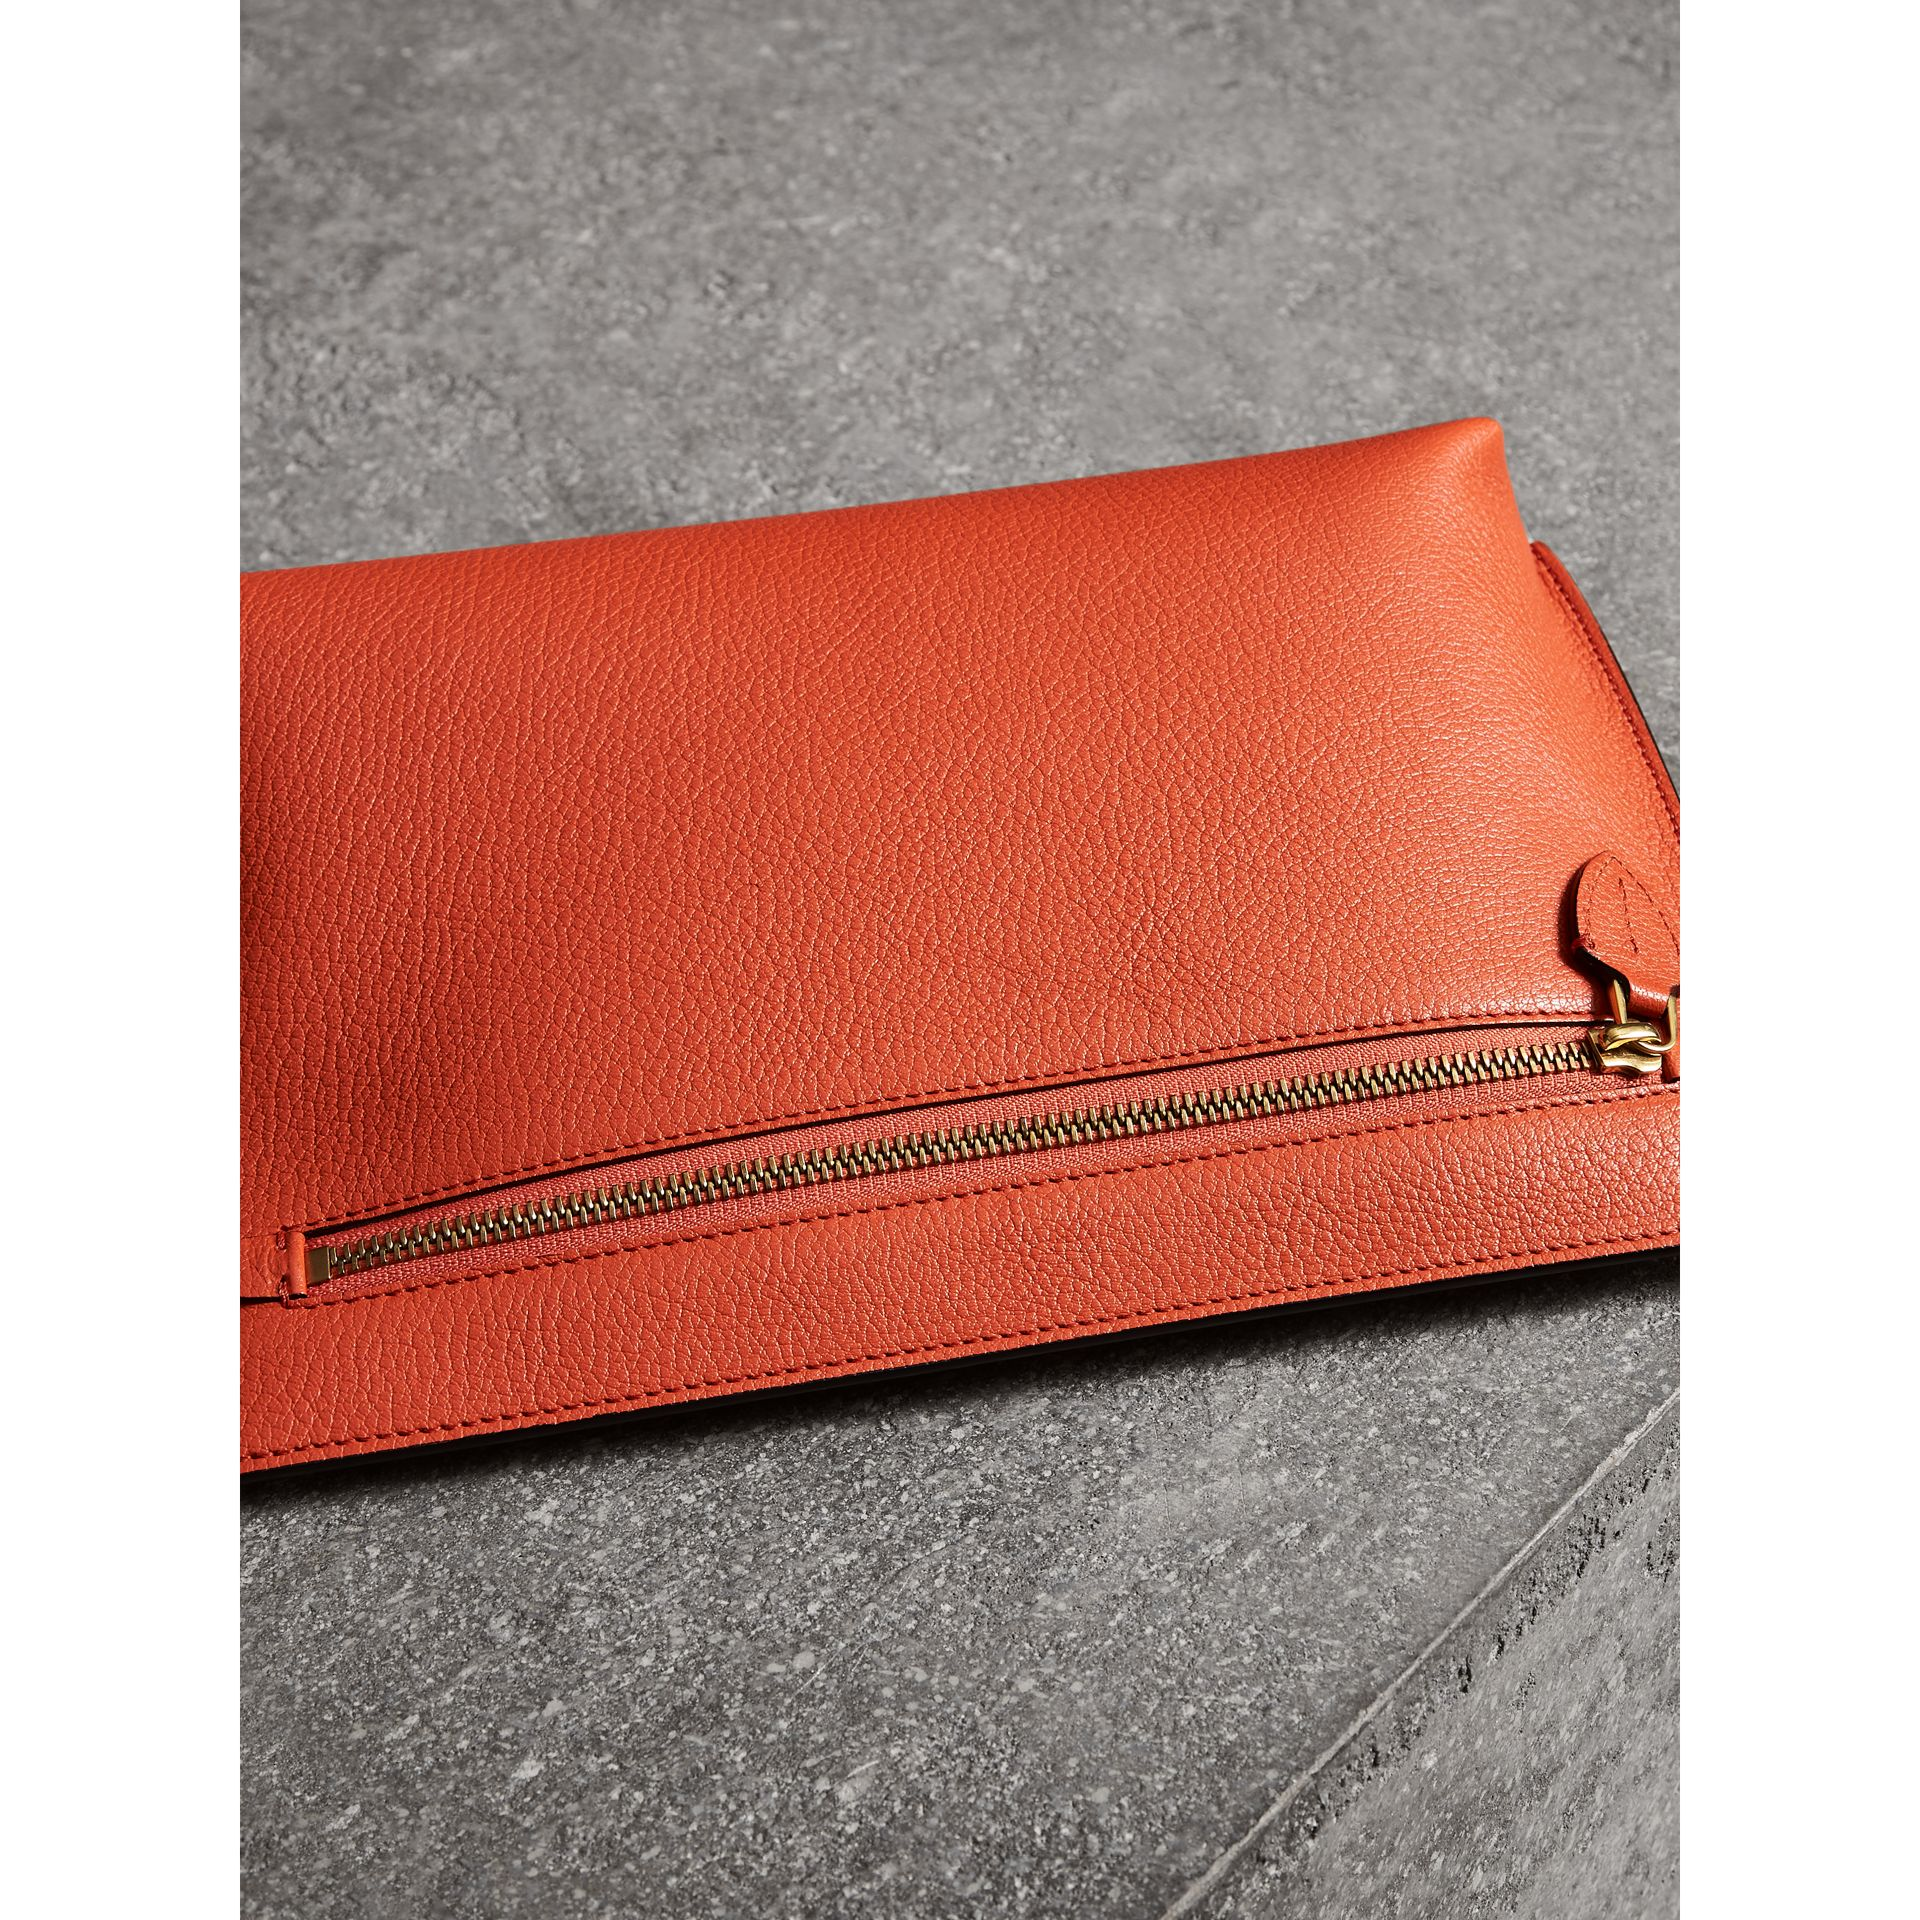 Grainy Leather Wristlet Clutch in Clementine - Women | Burberry Australia - gallery image 7